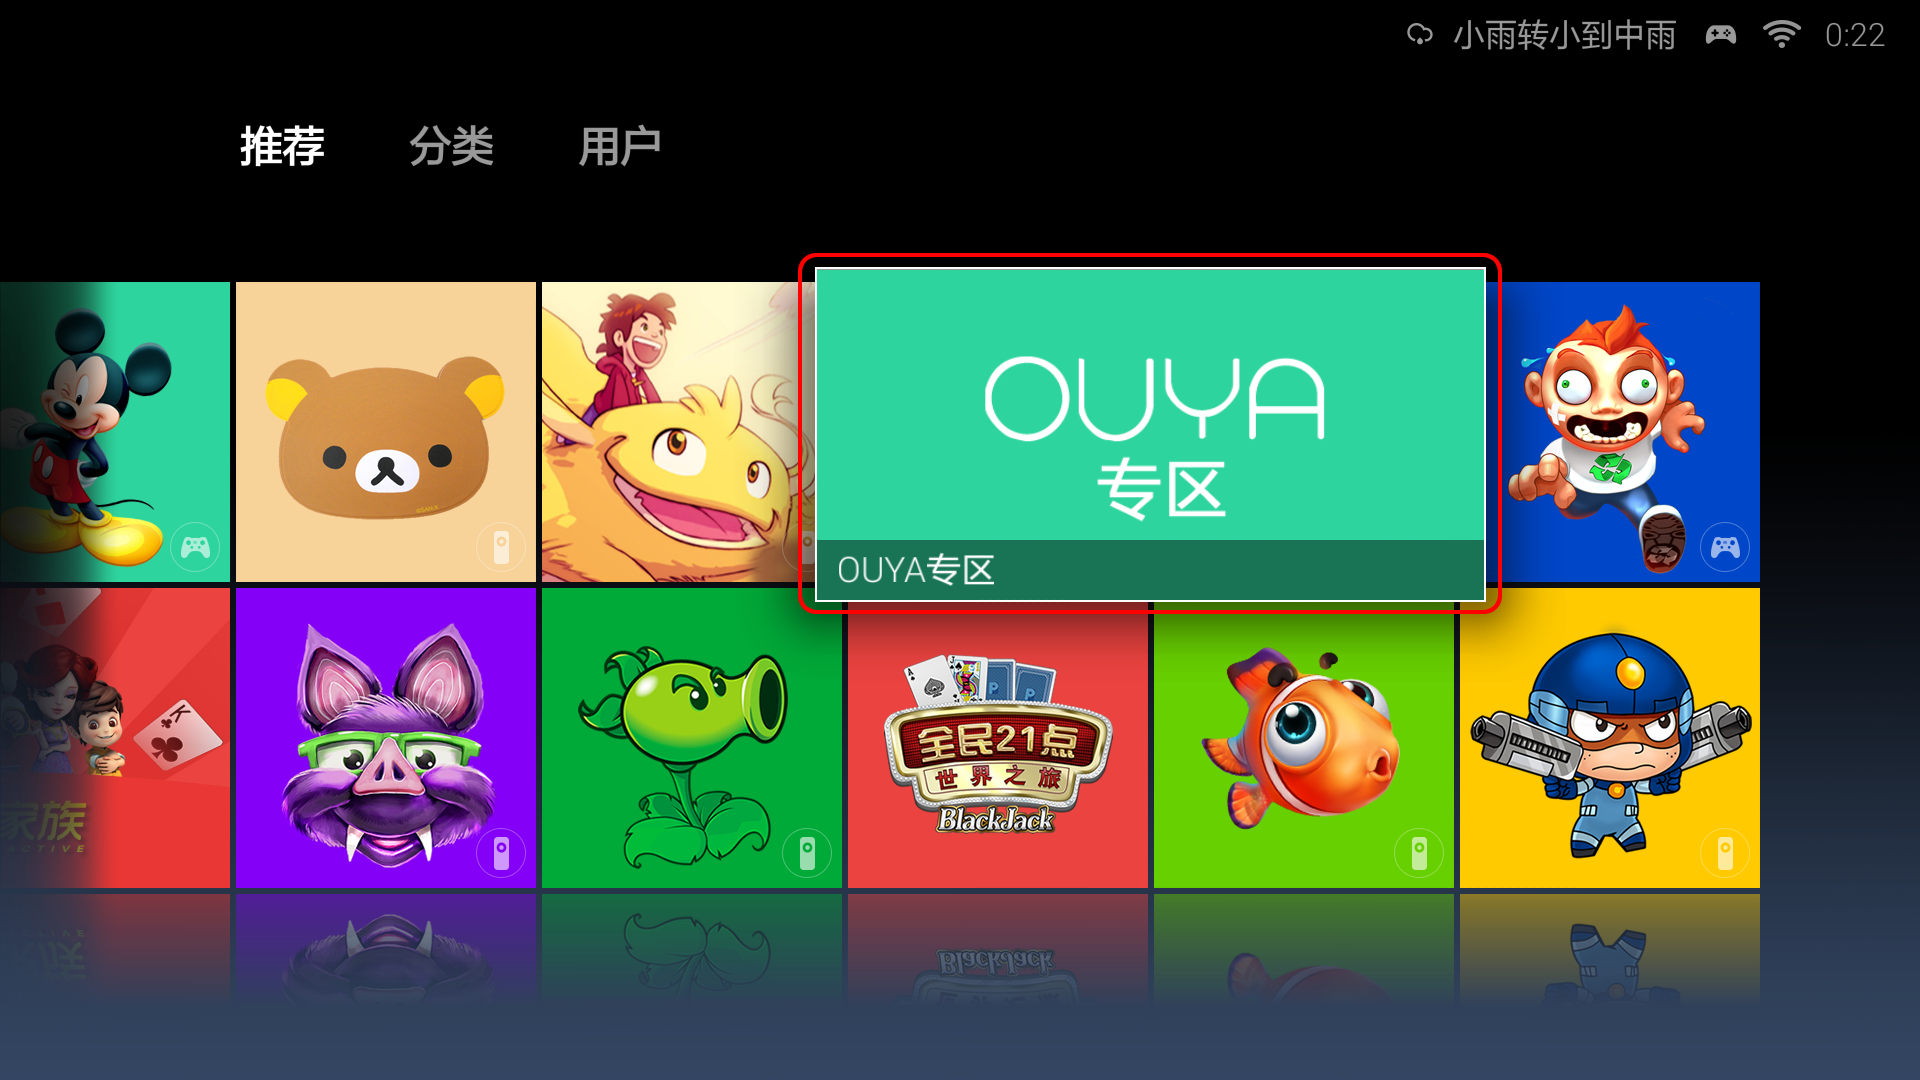 OUYA Category